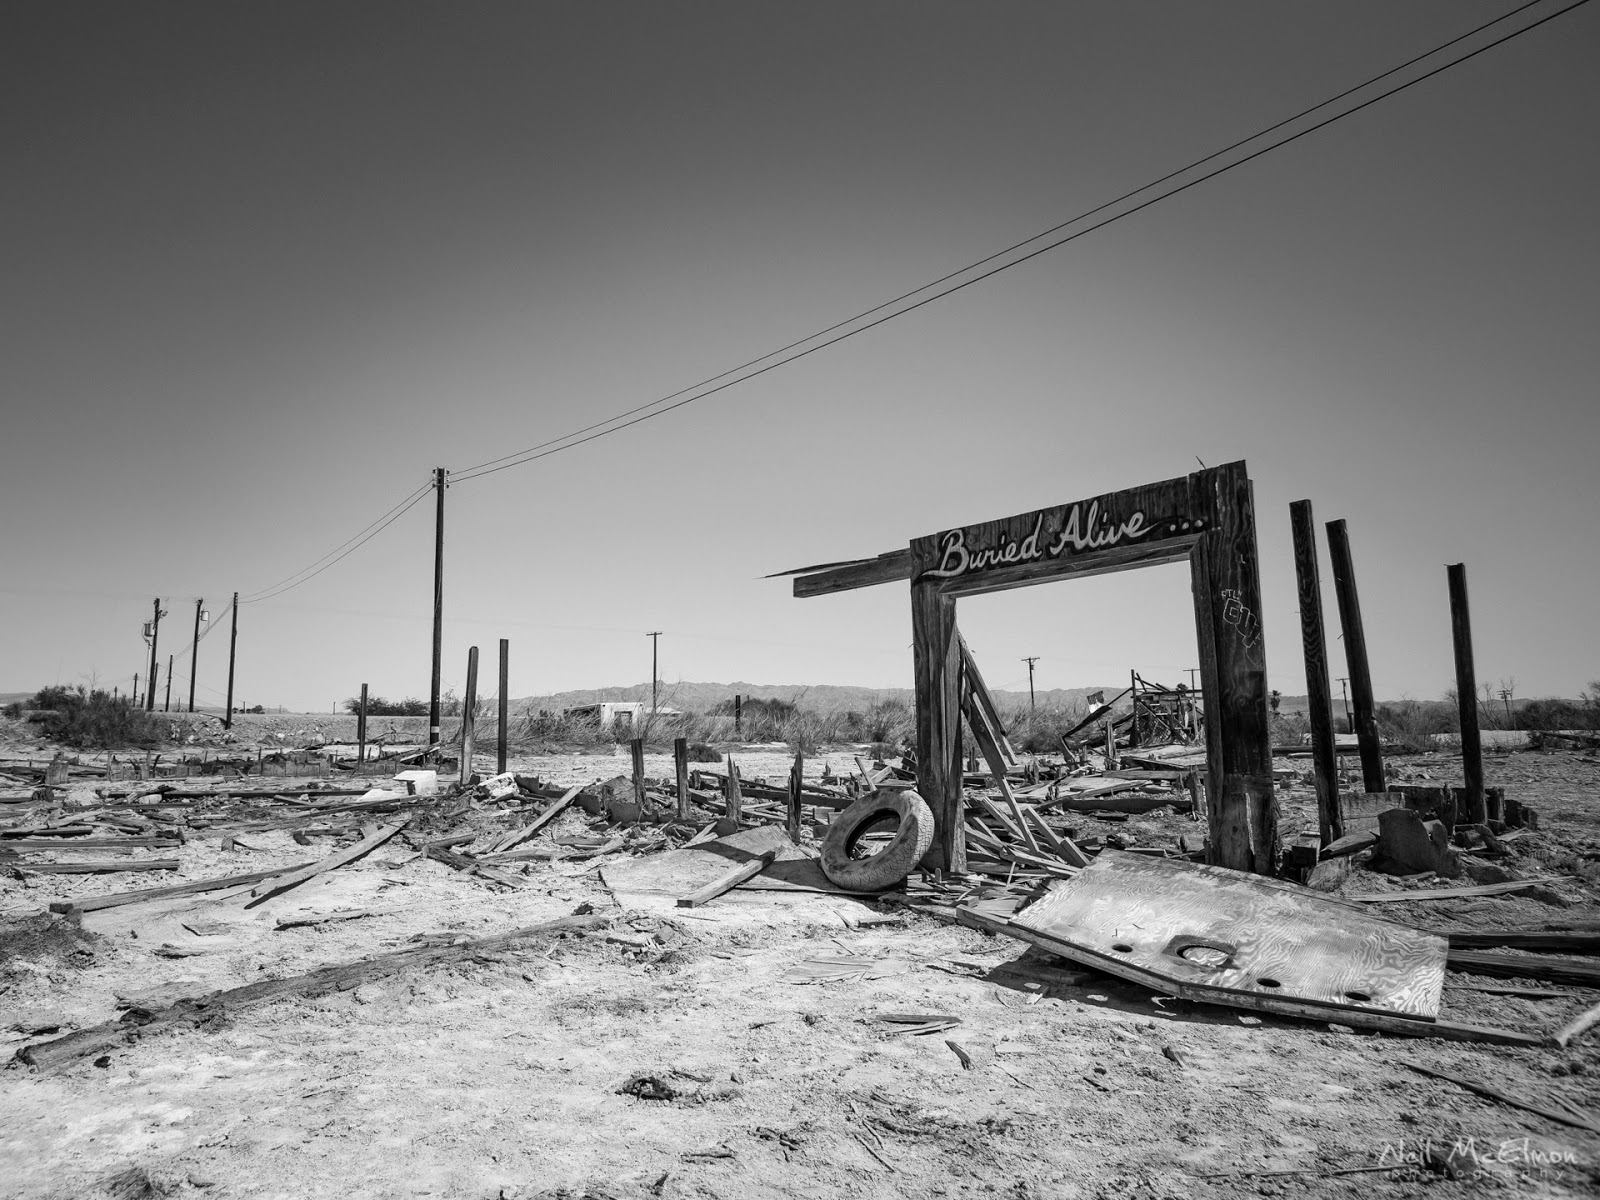 Bombay Beach, Salton Sea, California